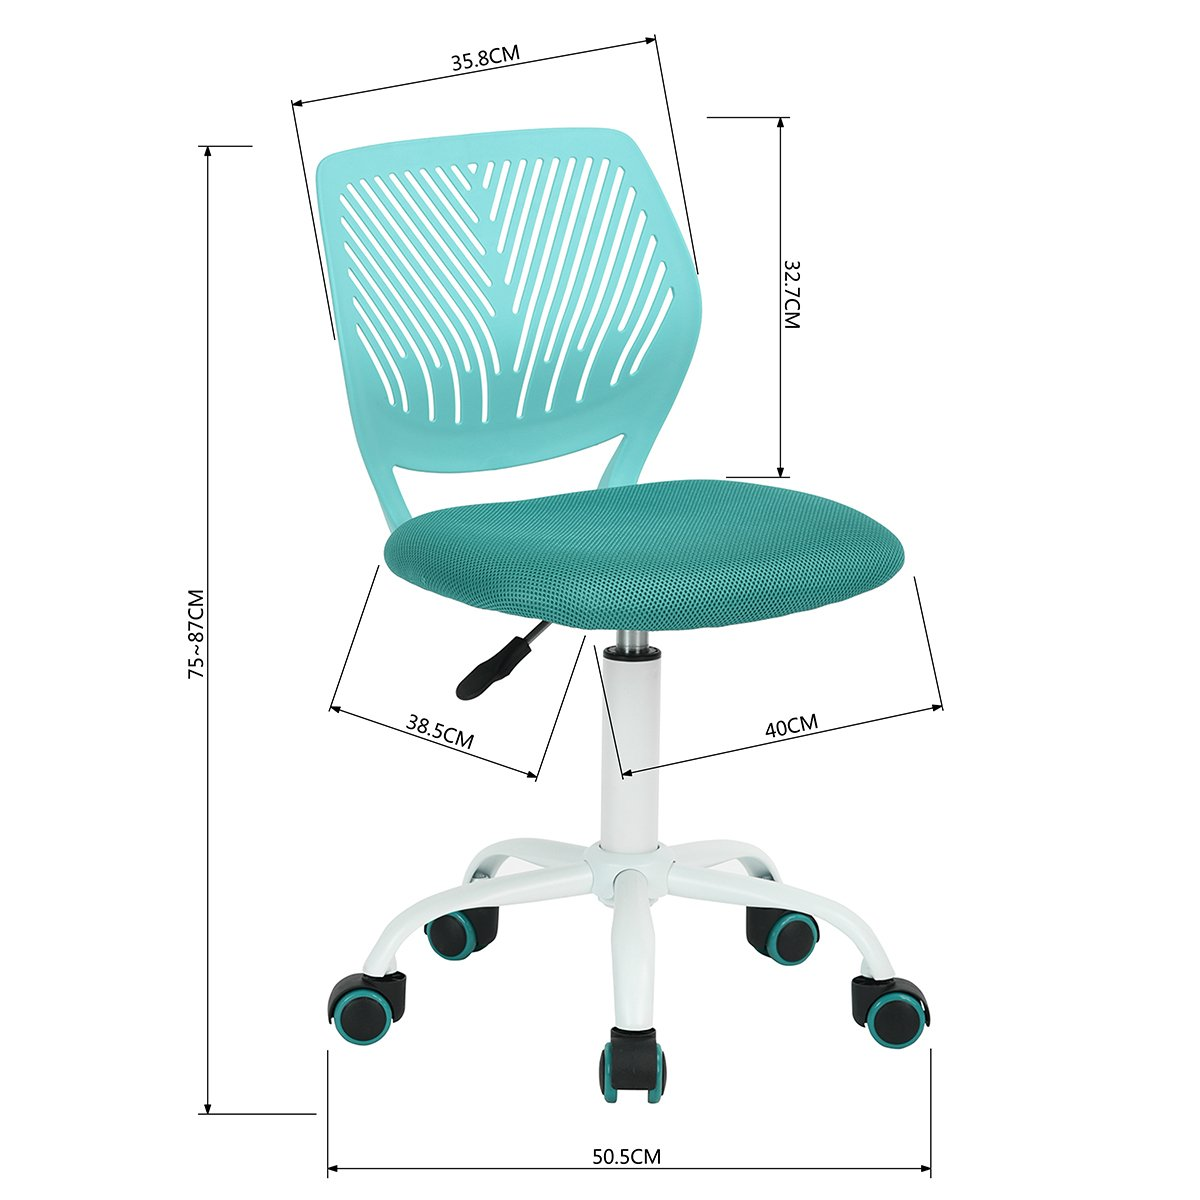 FunitureR Armless Swivel Desk Chair Kids Study Chair Plastic Colorful Wheels Turquoise